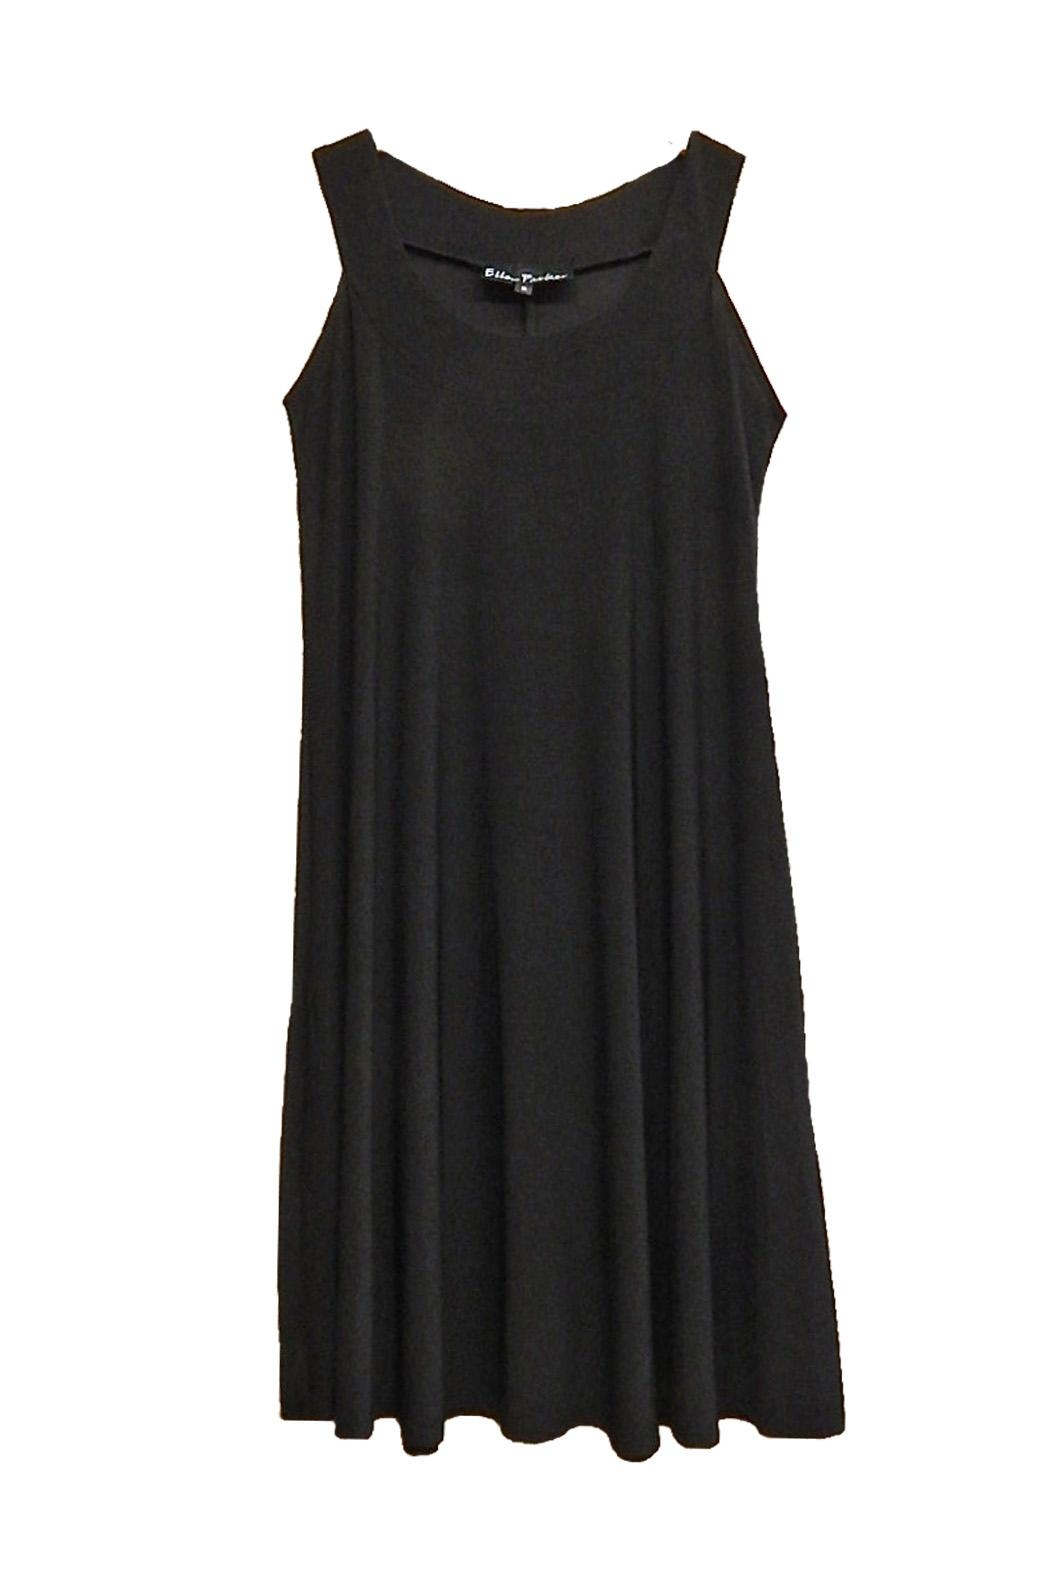 Ellen Parker Black Sleeveless Dress - Main Image